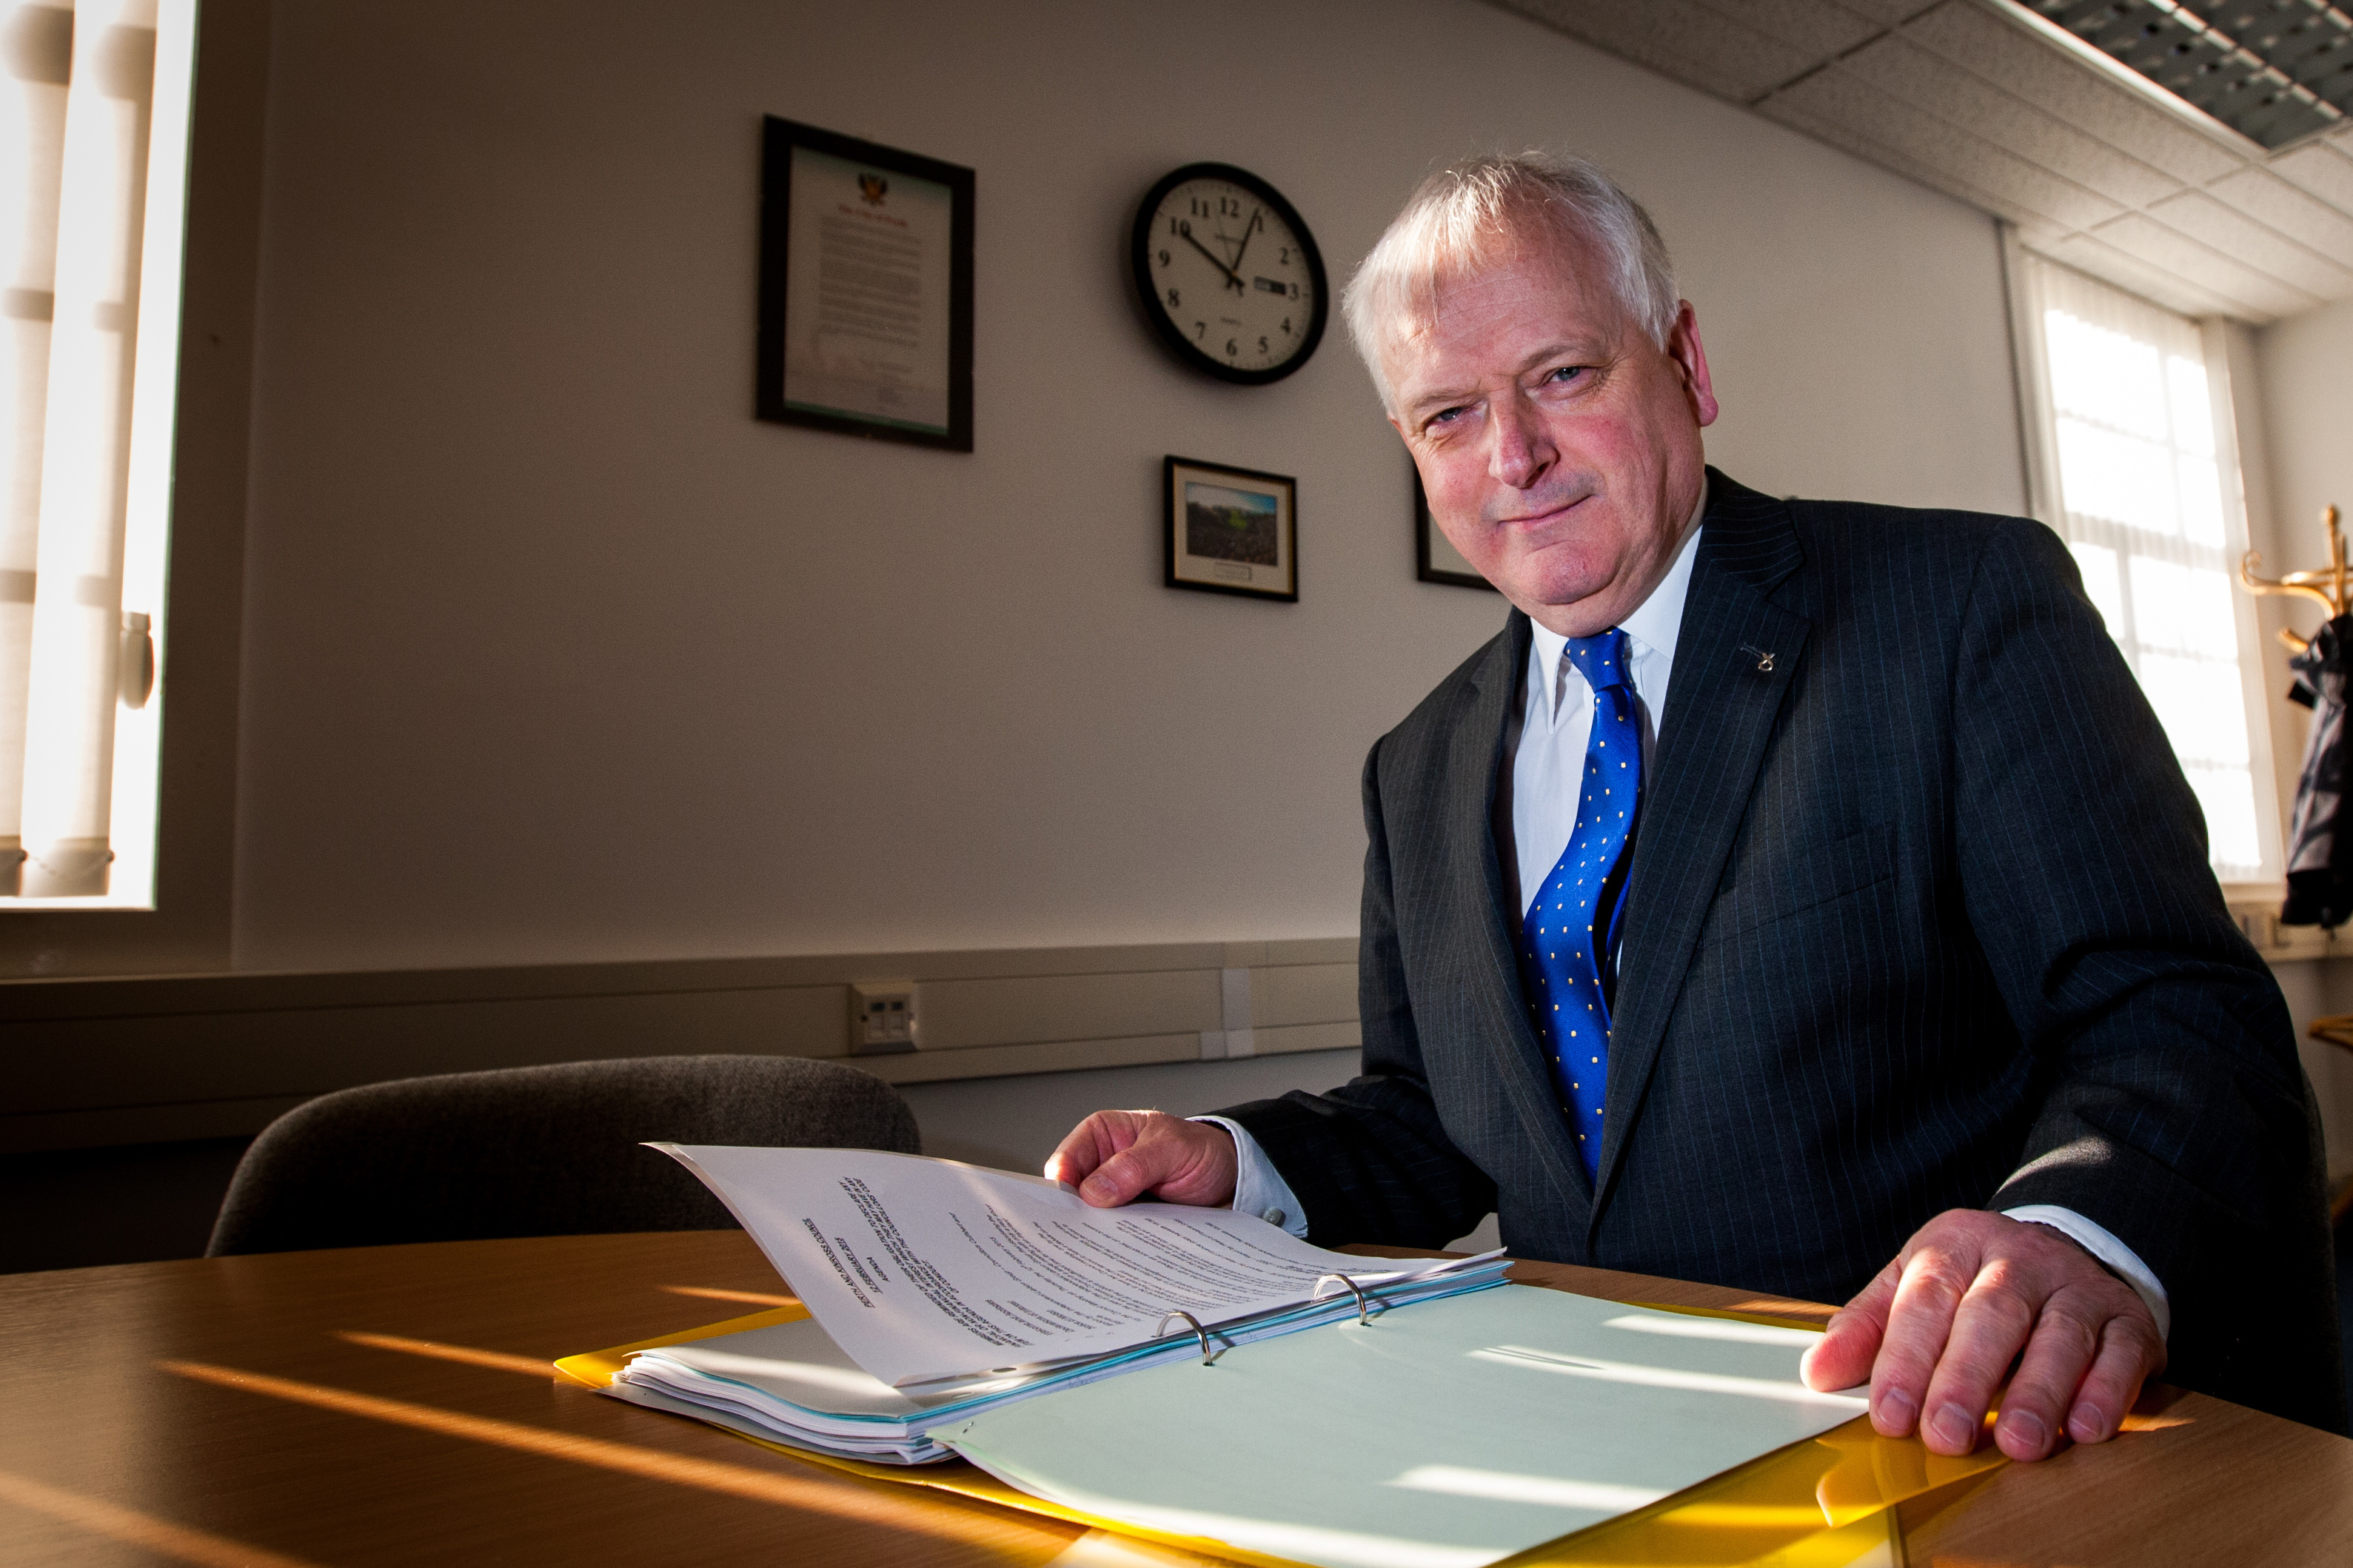 Leader of Perth and Kinross Council Ian Miller.